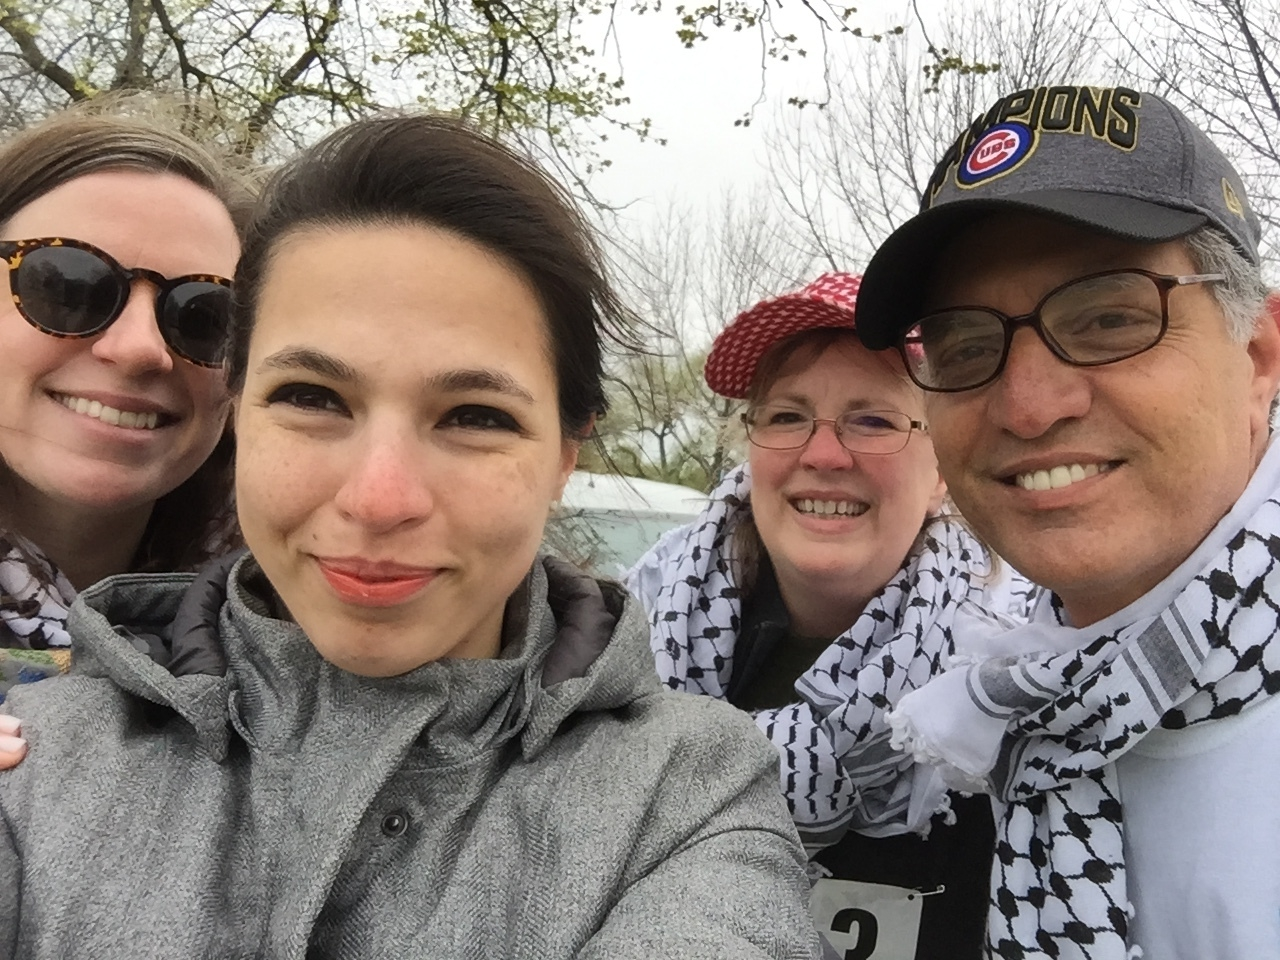 gaza walk run 4.29.17.JPG